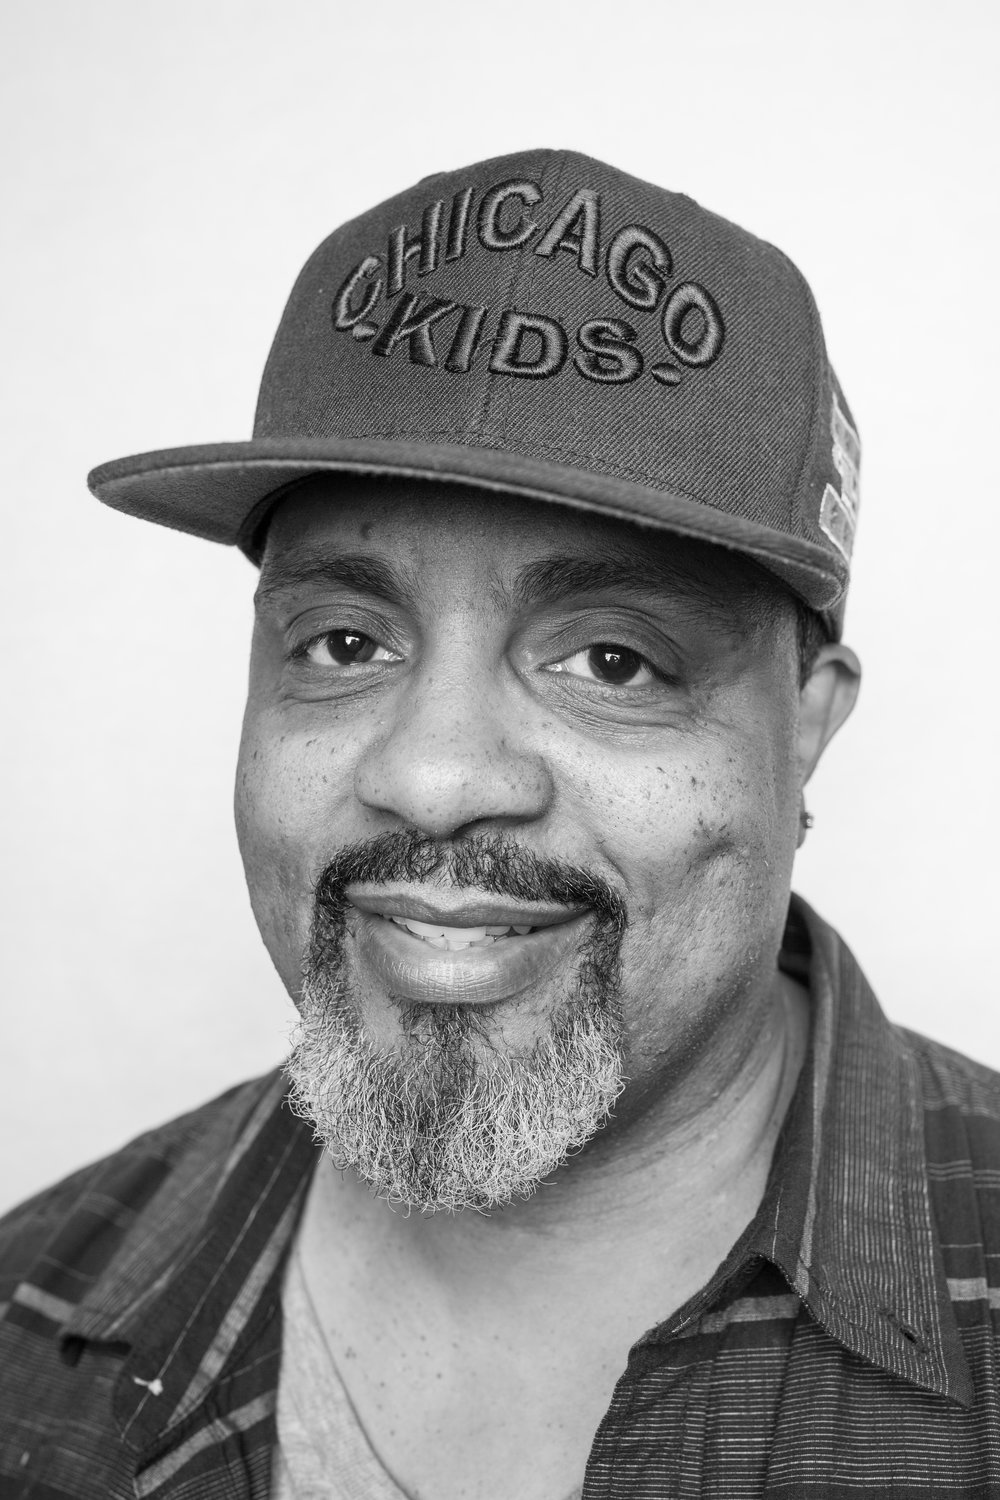 Elzee - Barber since 1988. My specialities are fades, shape-ups, tapers and beard/goatee trims. My approach is to make my clients look their best.